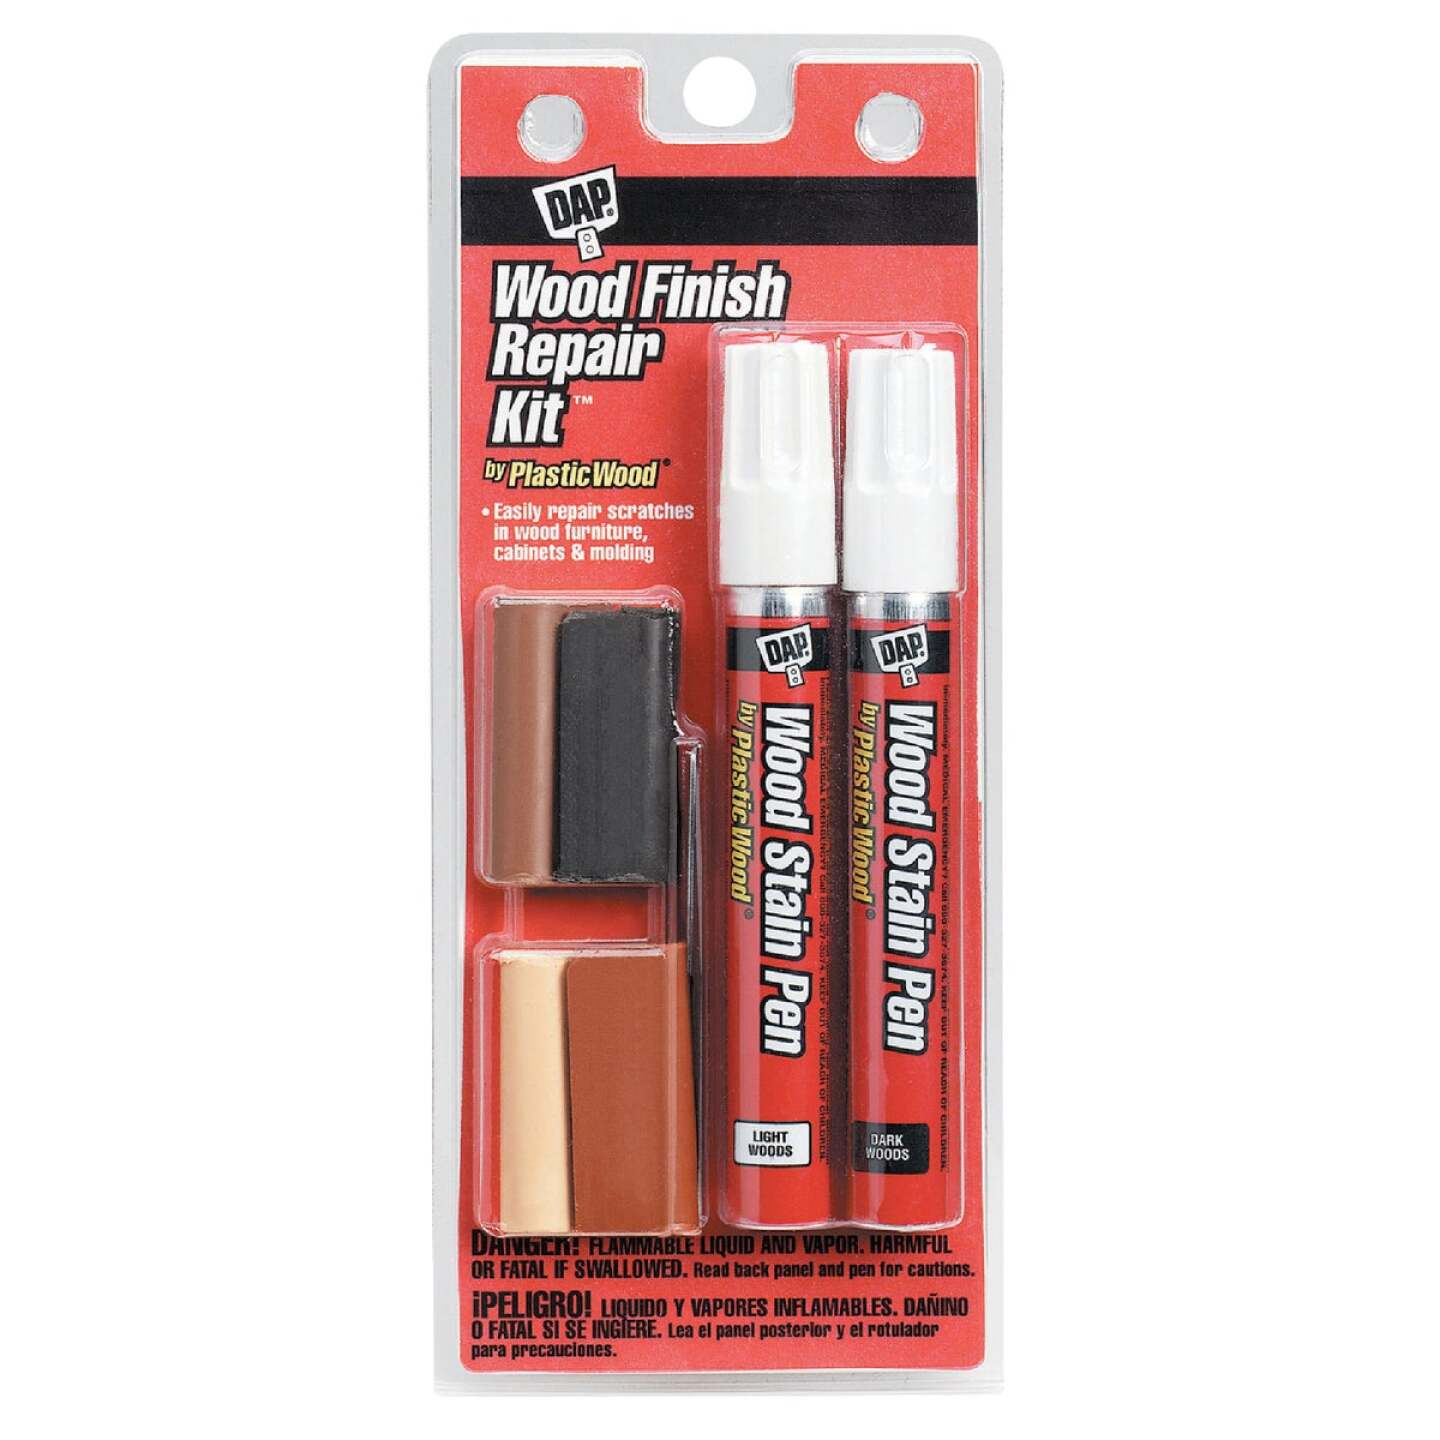 DAP 6-Color Wood Finish Repair Kit Image 1